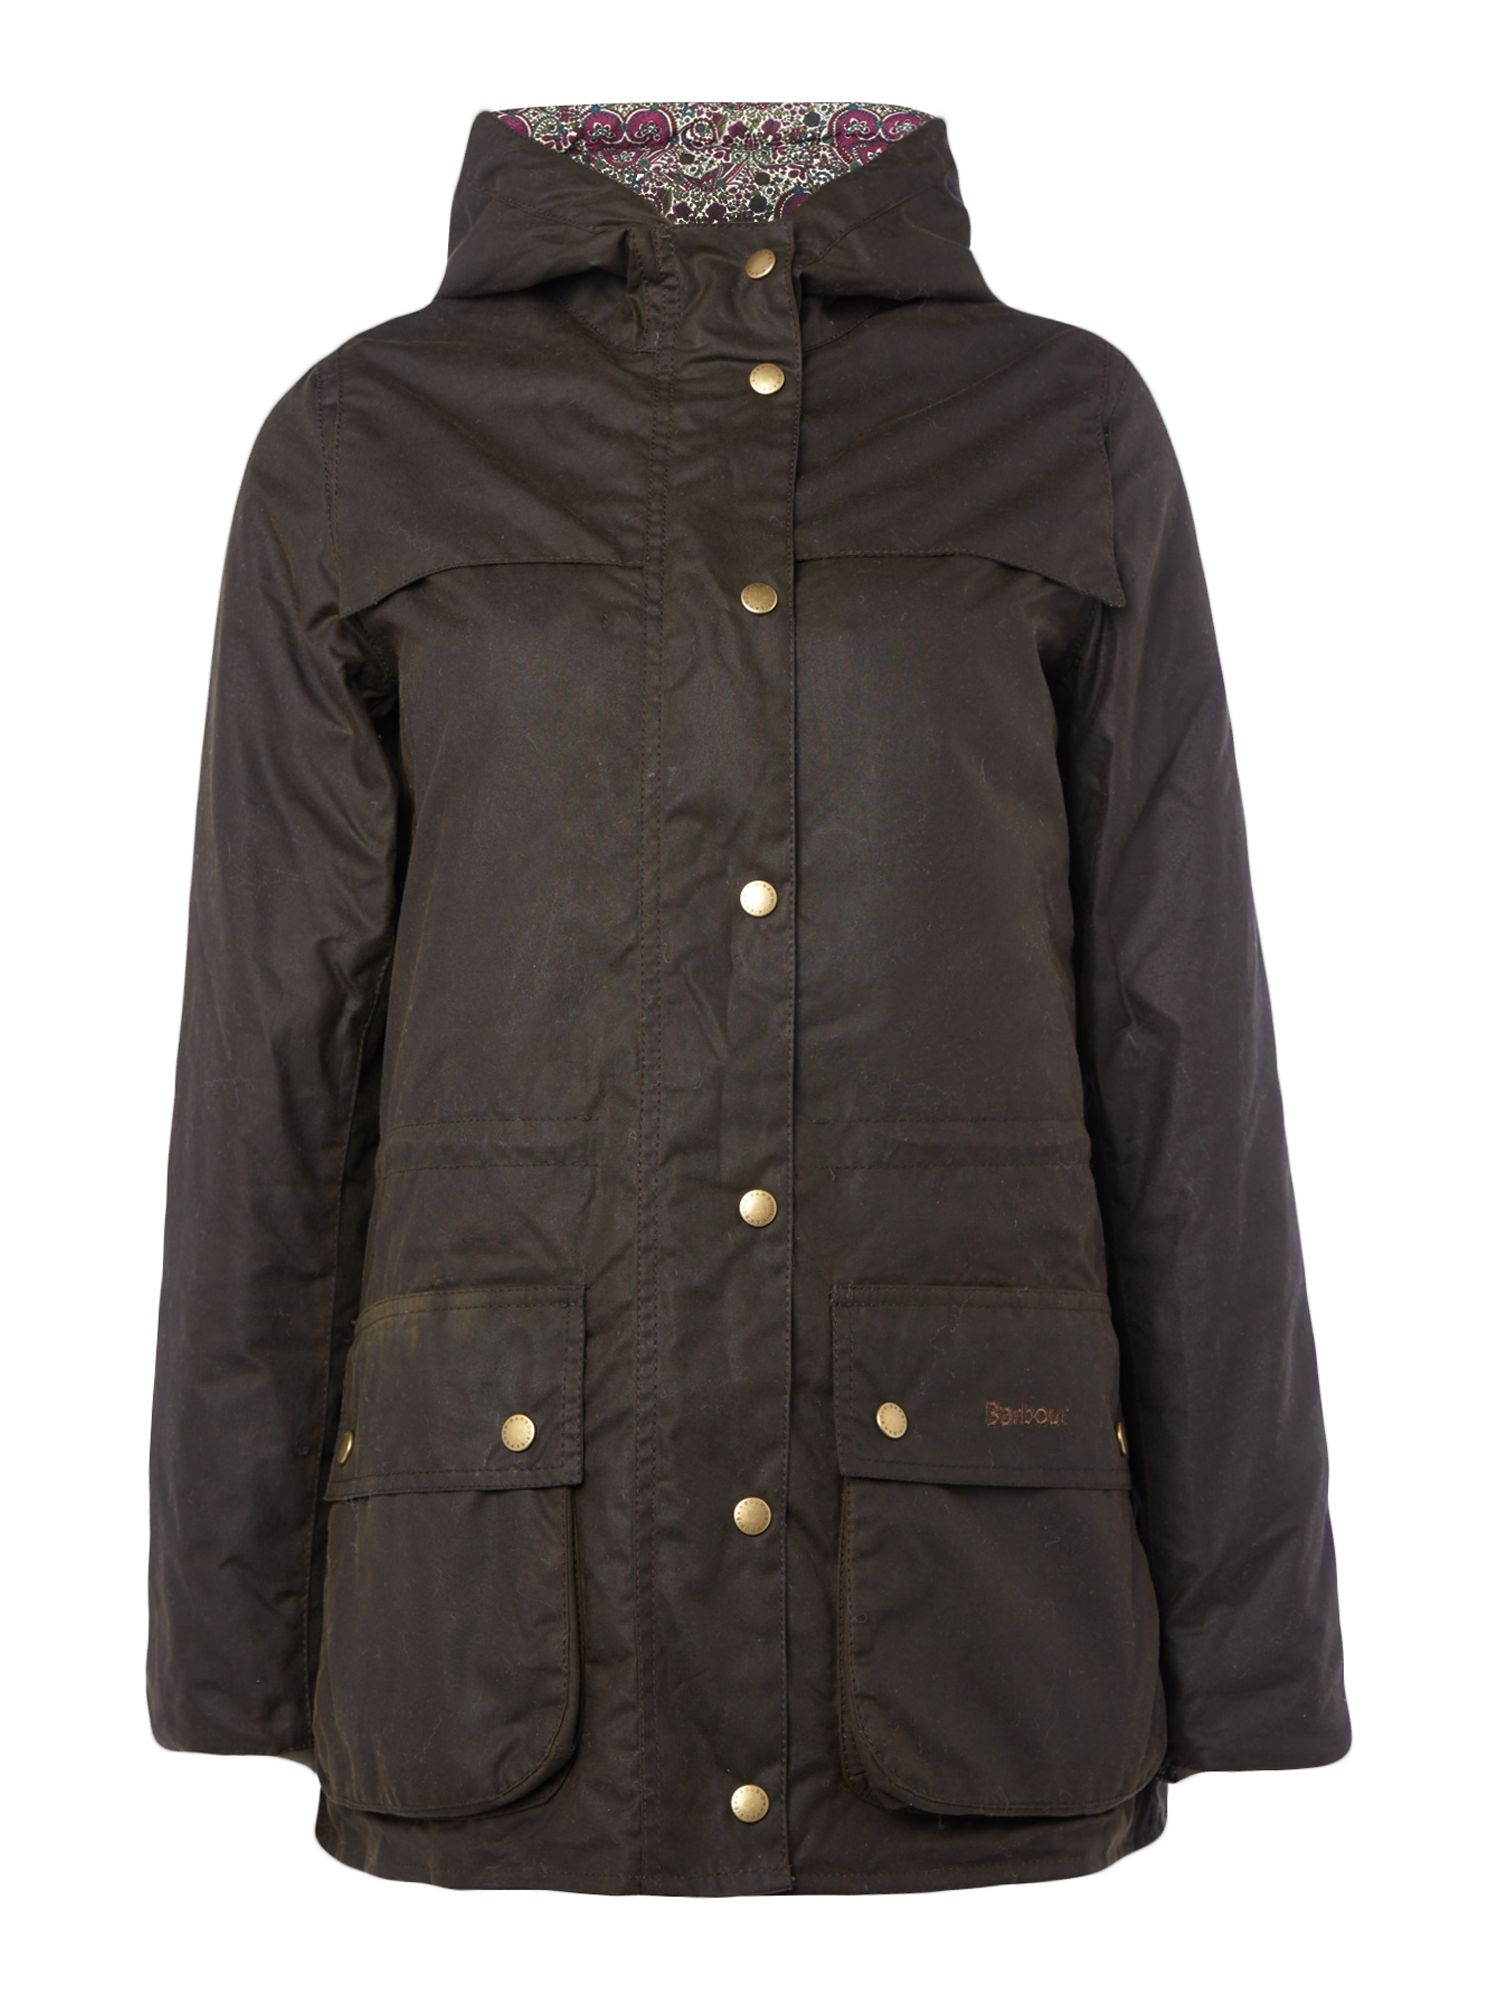 Barbour Blaise Wax Jacket With Liberty Kitty Grace Lining, Olive.